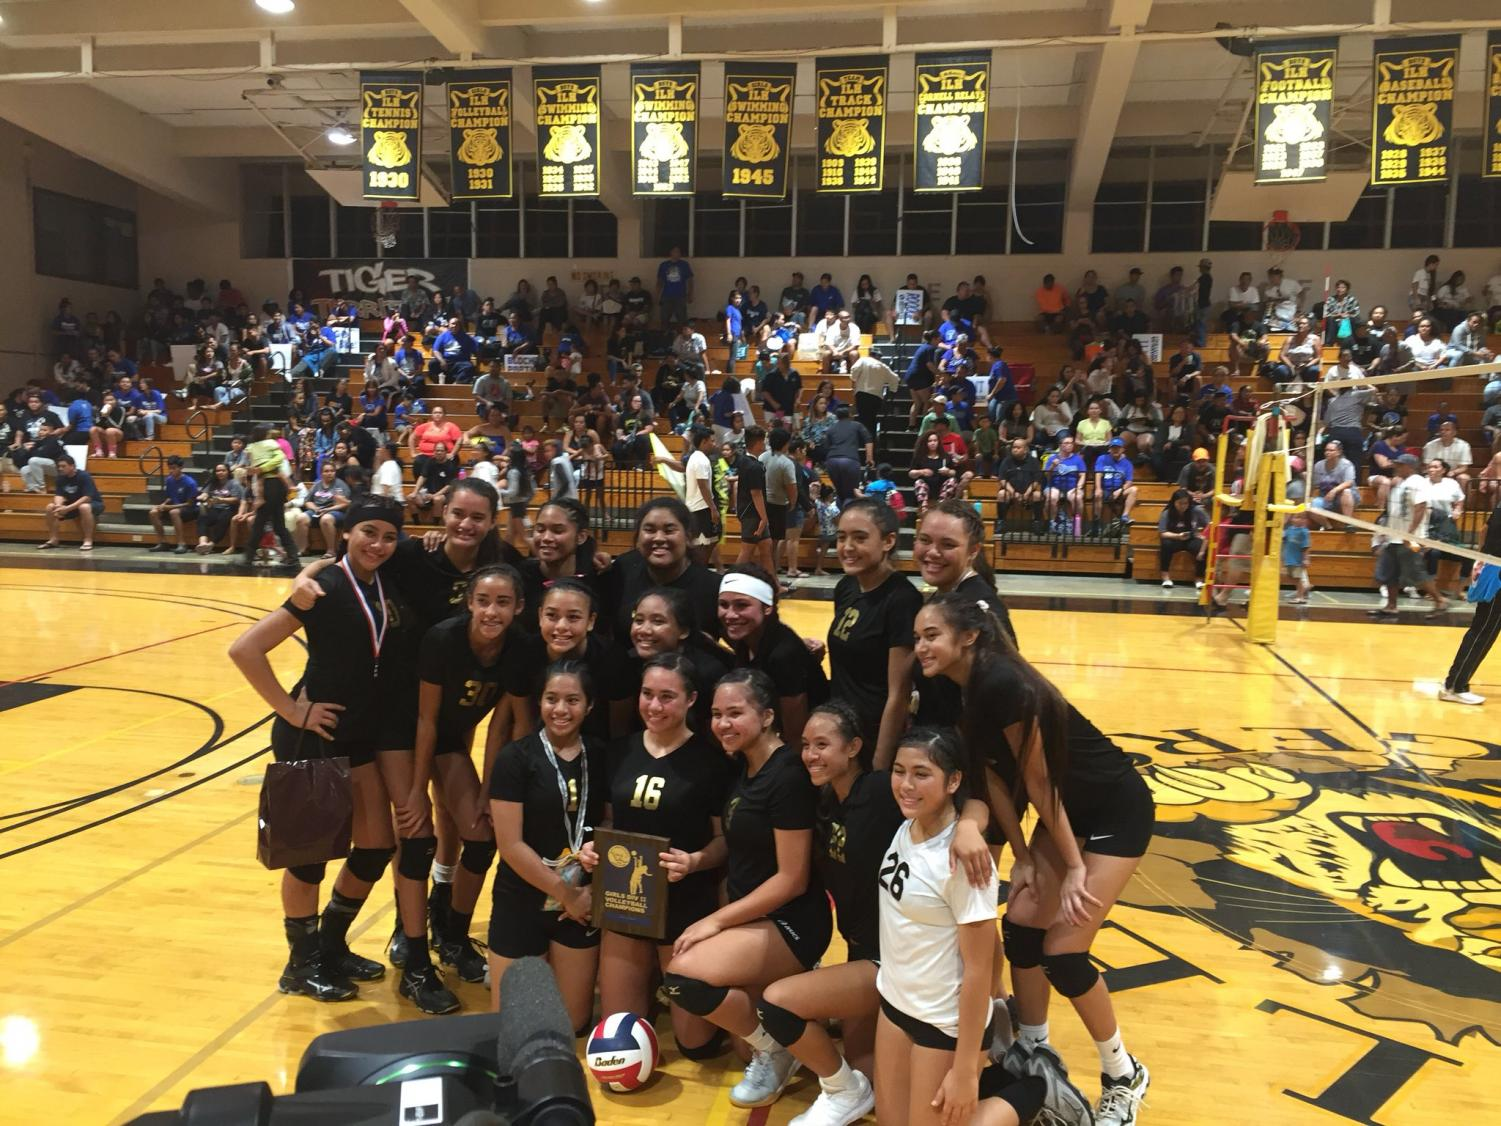 The Varsity Girl's Volleyball team pose after winning the championship.